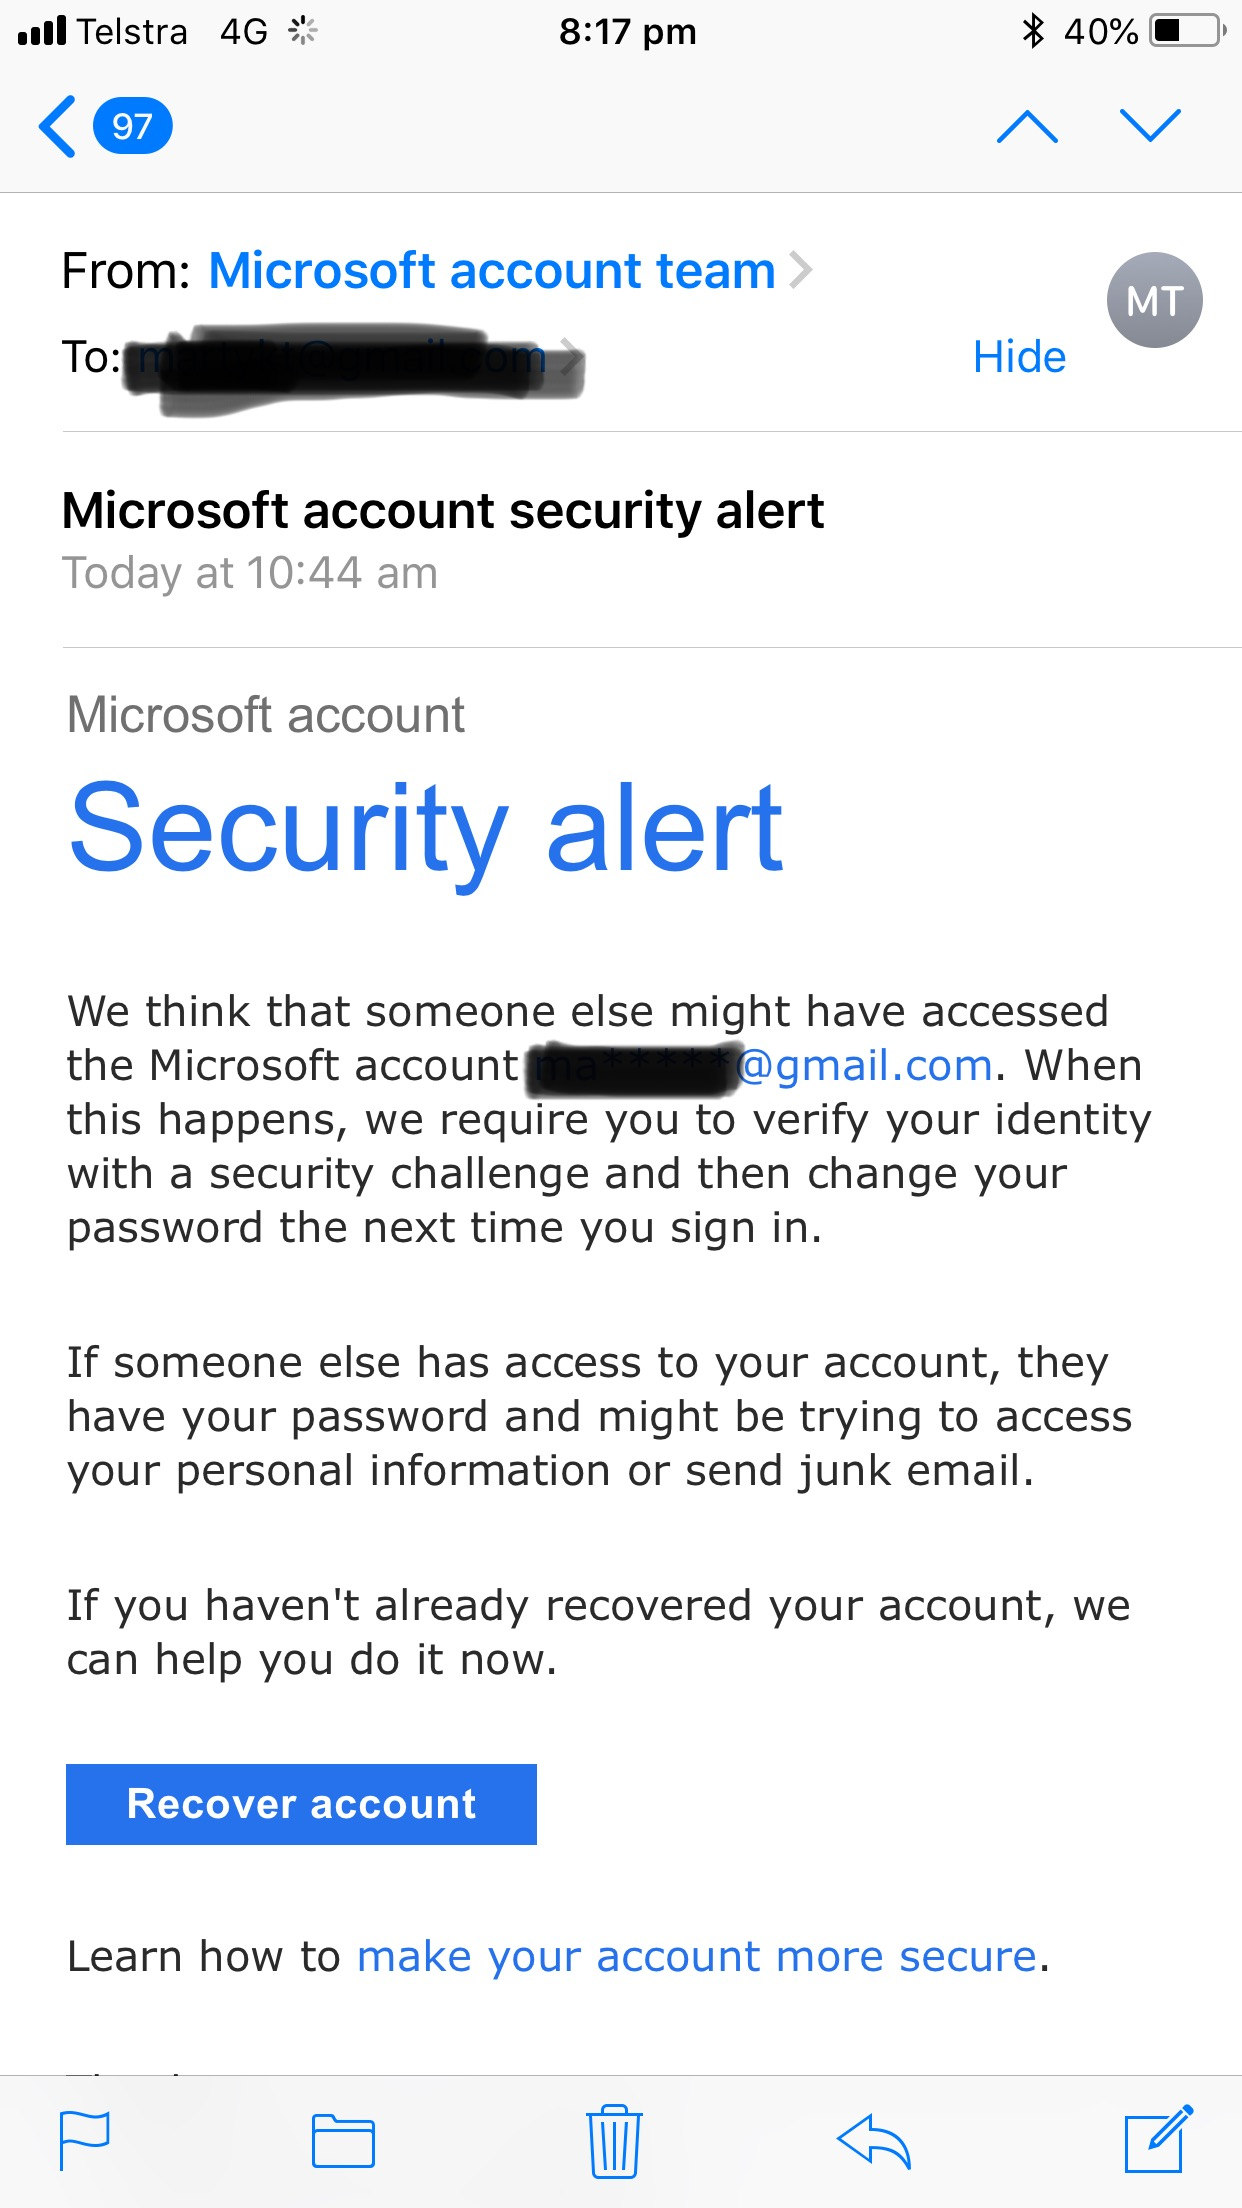 microsoft account security alert email and text